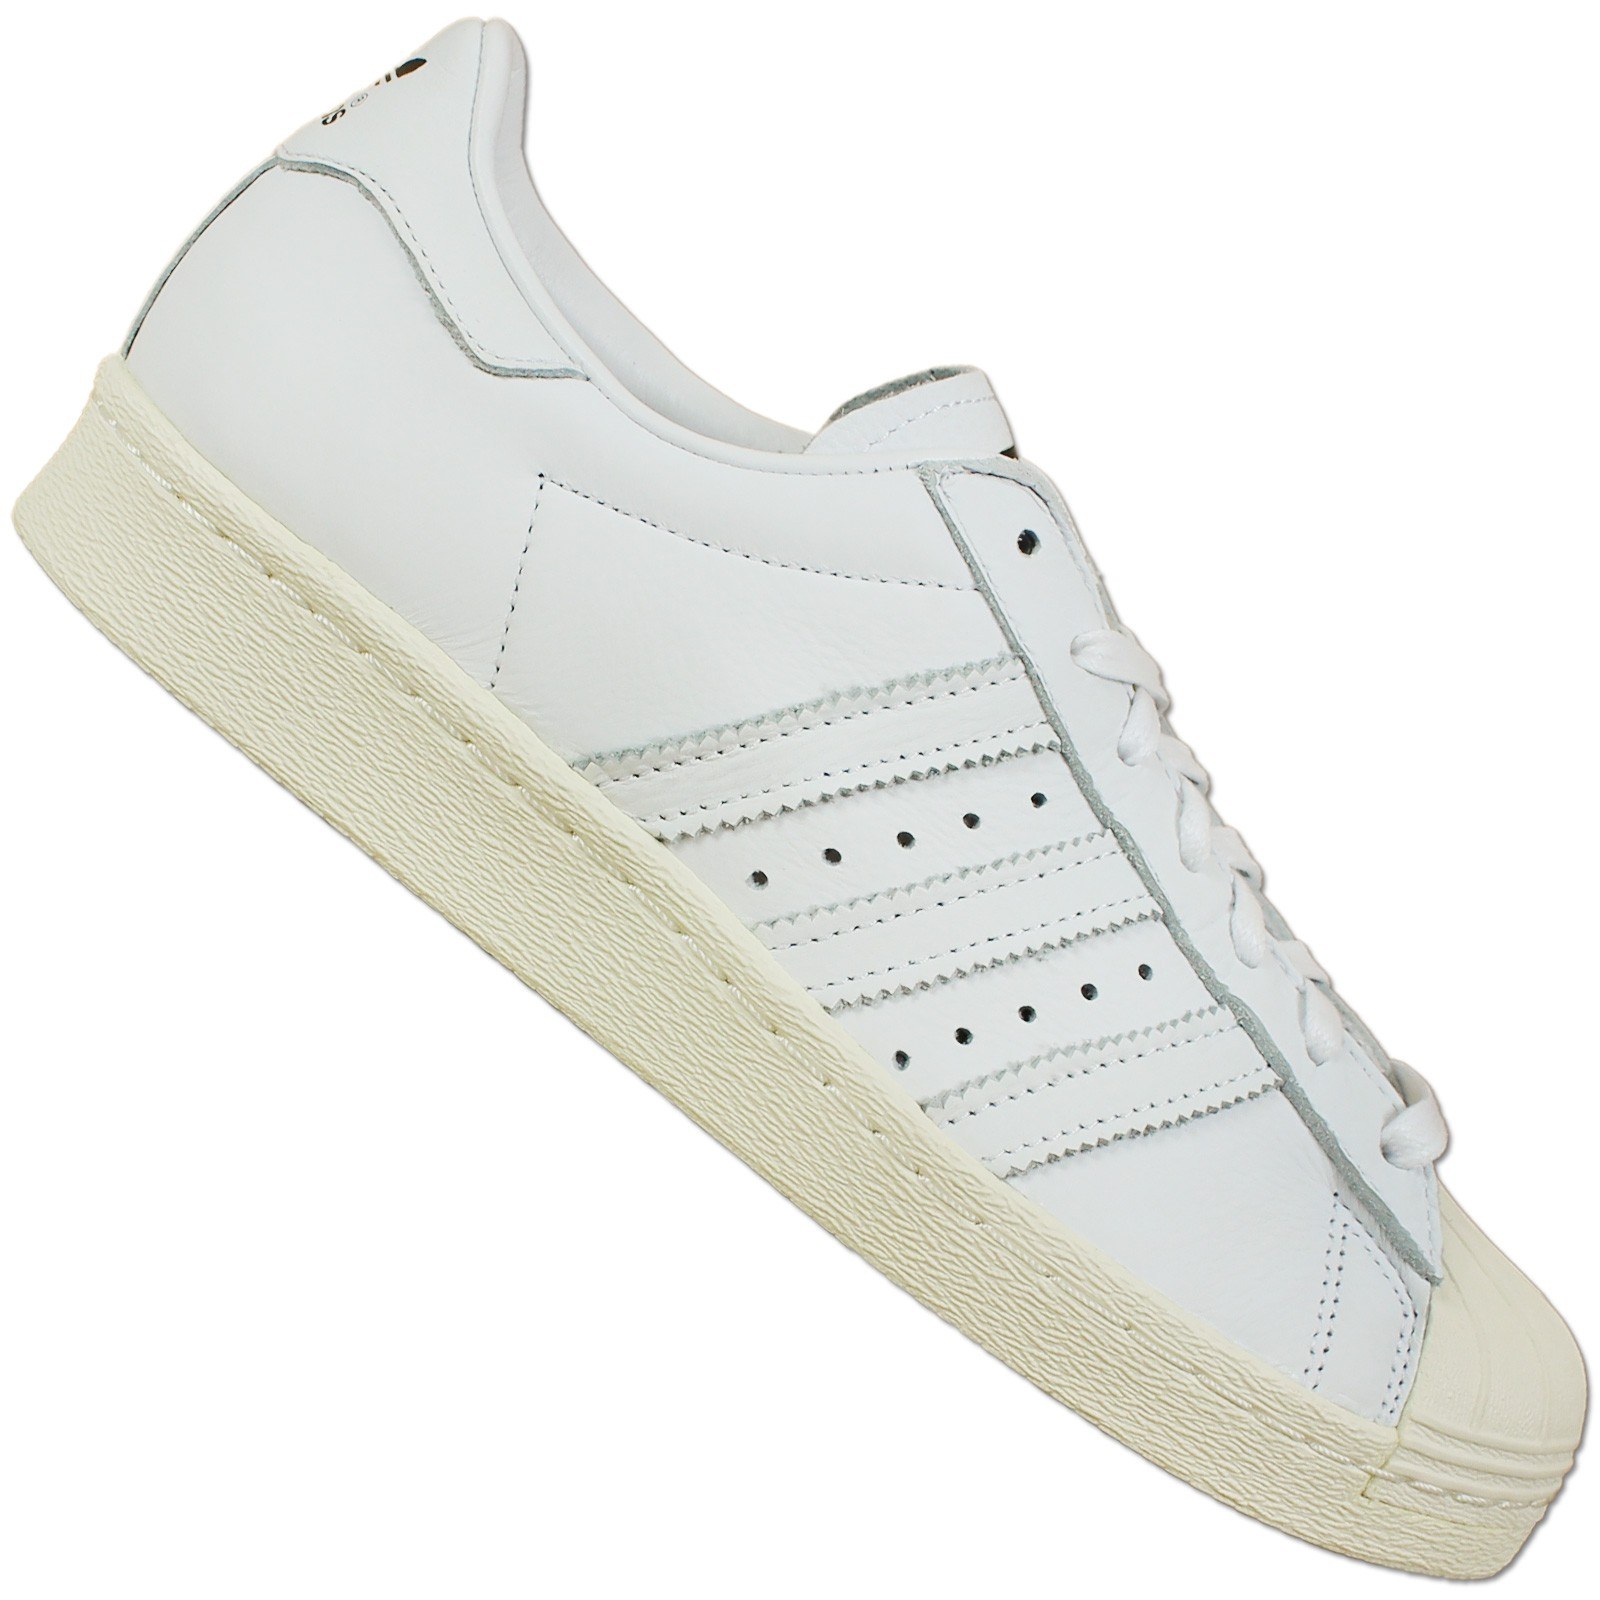 0cdb3c067321 Details about Adidas Superstar 80s Dlx Deluxe S75016 Trainers Special Shoes  Leather White